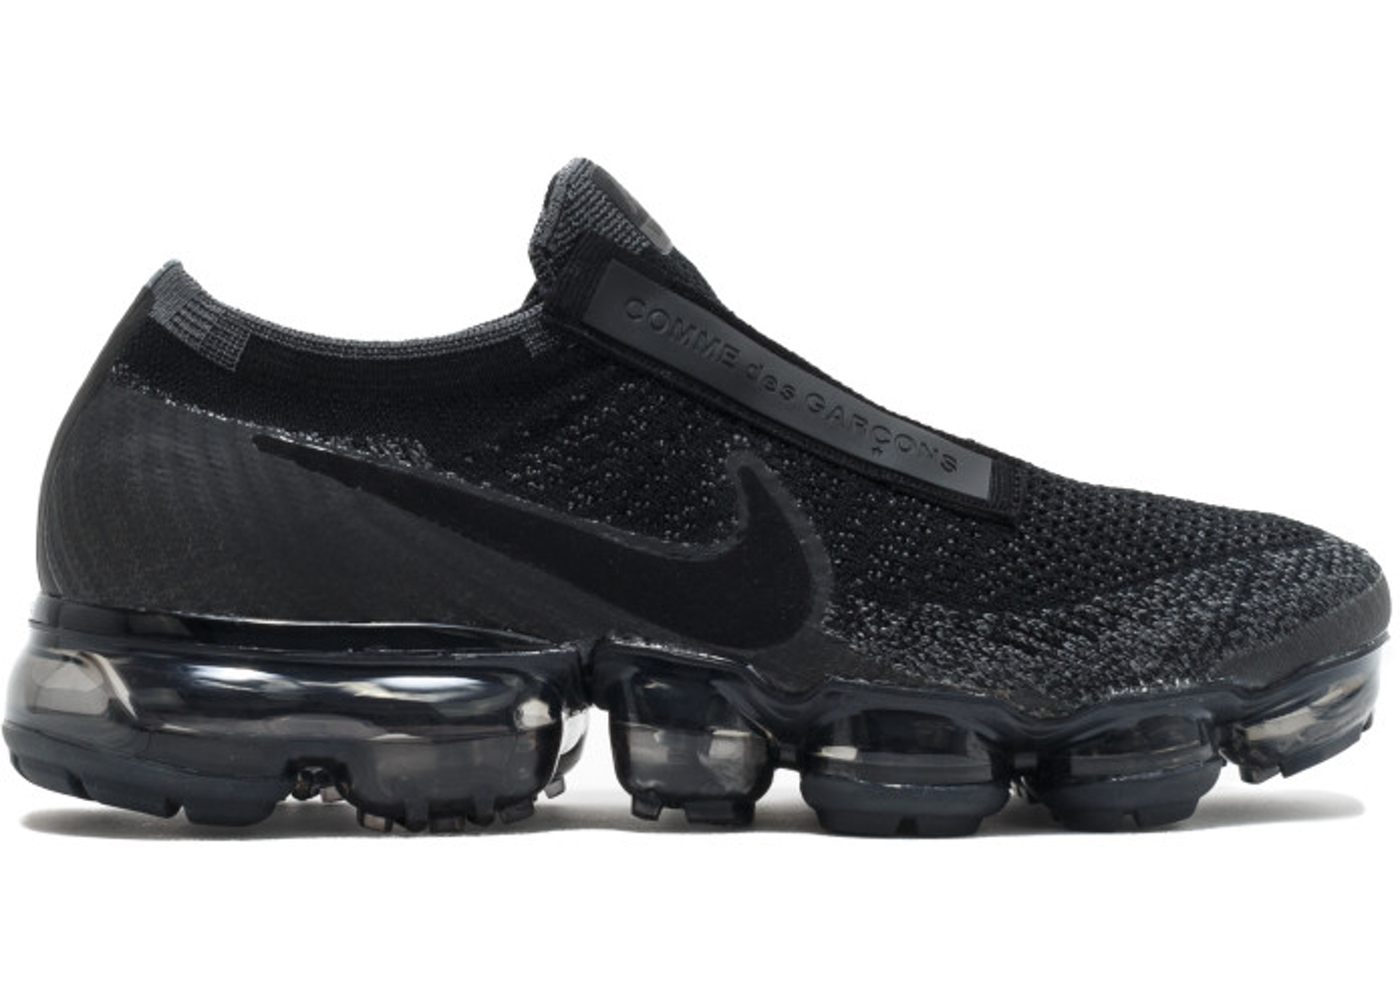 COMME des GARÇONS x Nike VaporMax: Where to Buy Online & Retail